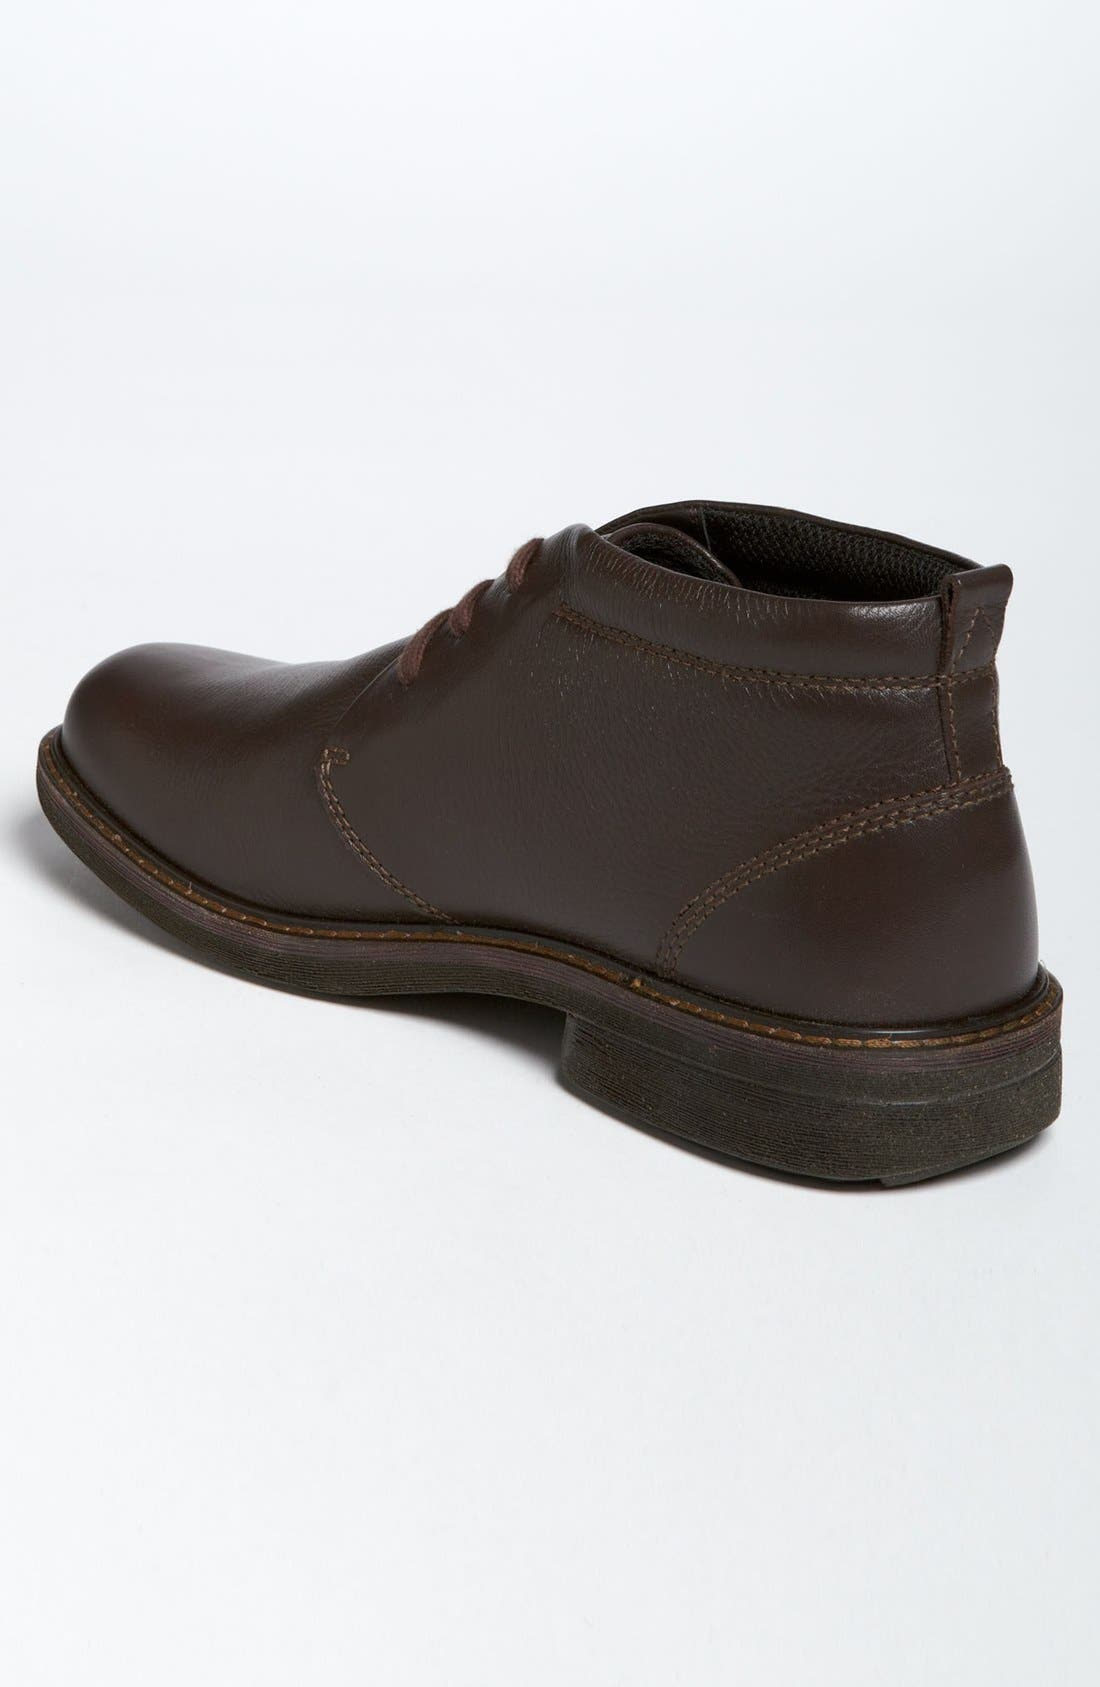 'Turn' Chukka Boot,                             Alternate thumbnail 2, color,                             COFFEE LEATHER